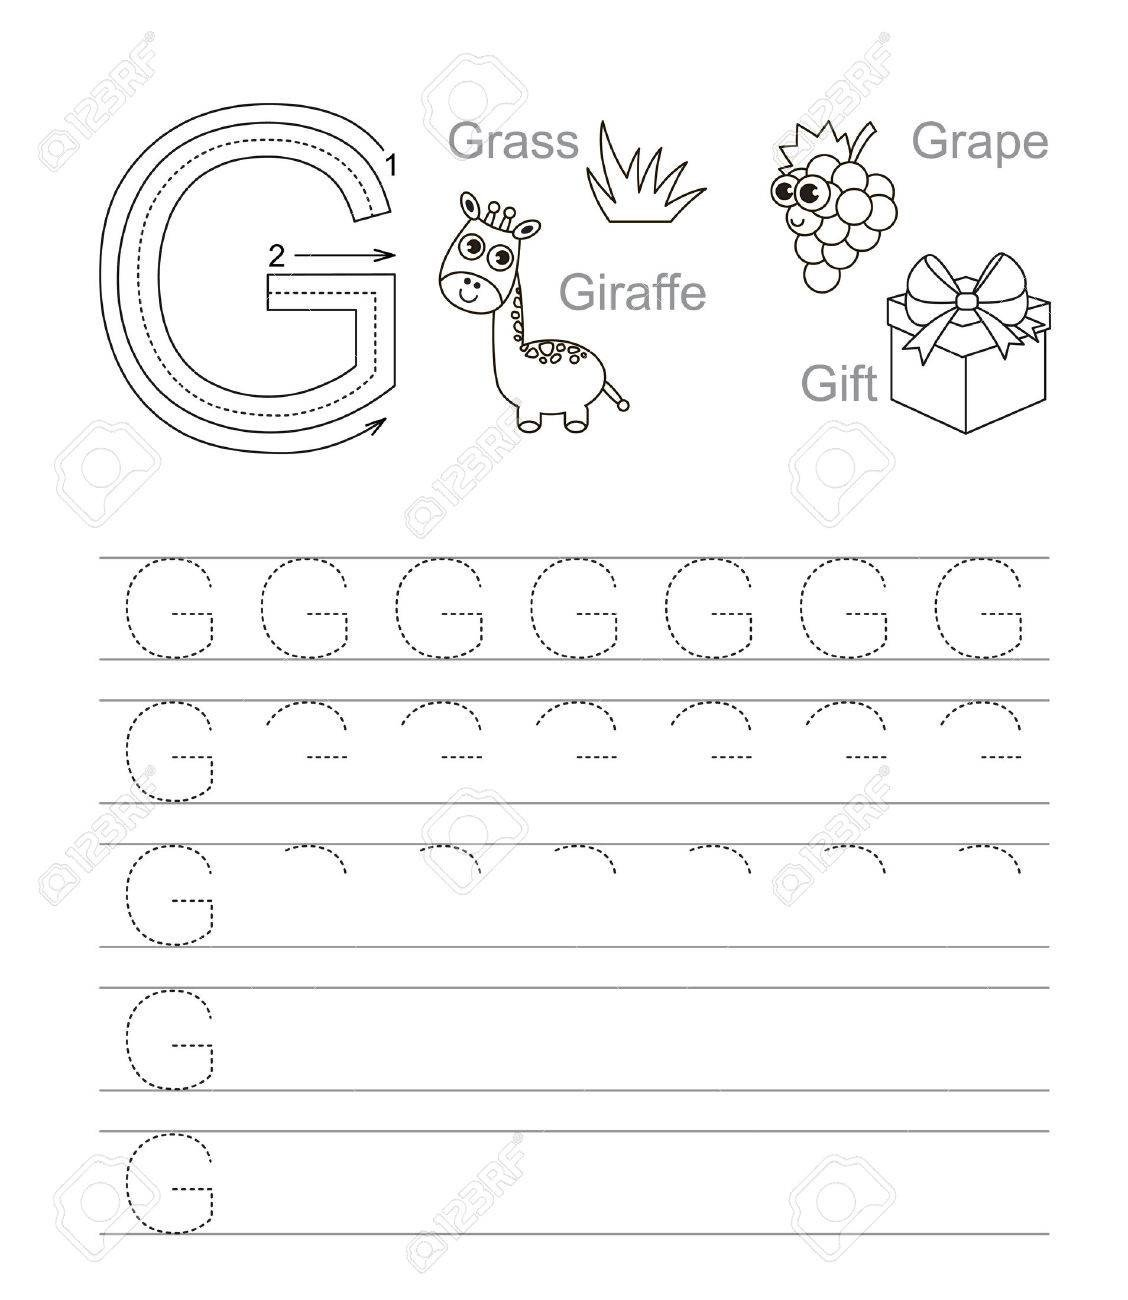 photo stock vector vector exercise illustrated alphabet learn handwriting tracing worksheet for letter g page to be col